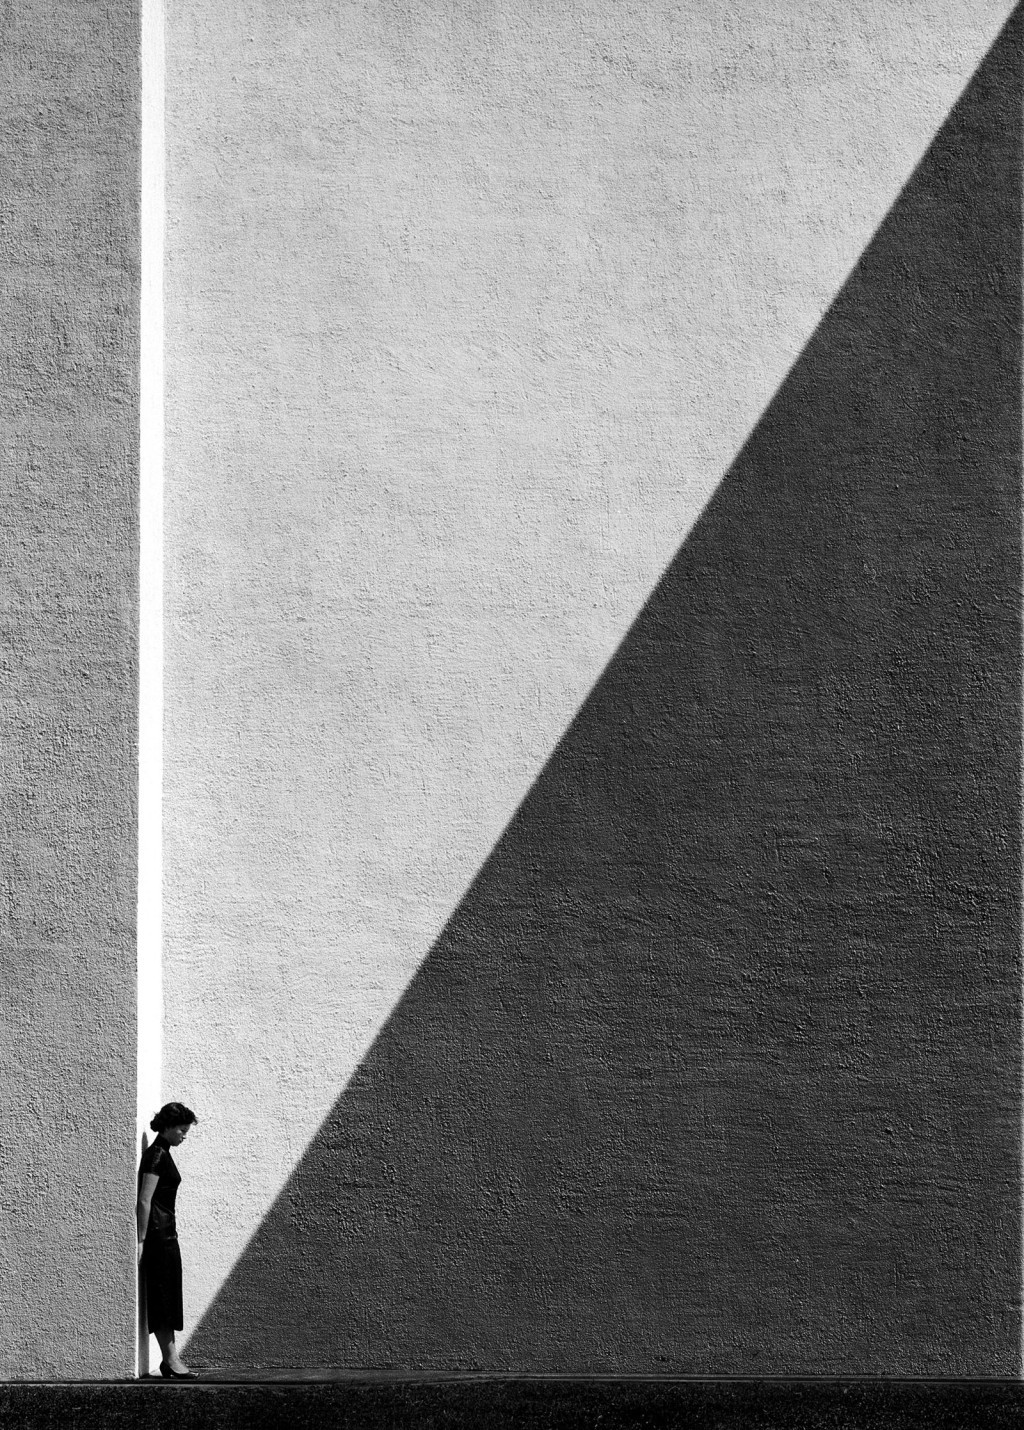 dailyartspace:  Artwork of the day: Approaching Shadow, 1956/2012 by Fan Ho Looking to freshen up your walls in 2013? Take a look at our collection of bold and graphic works for inspiration.